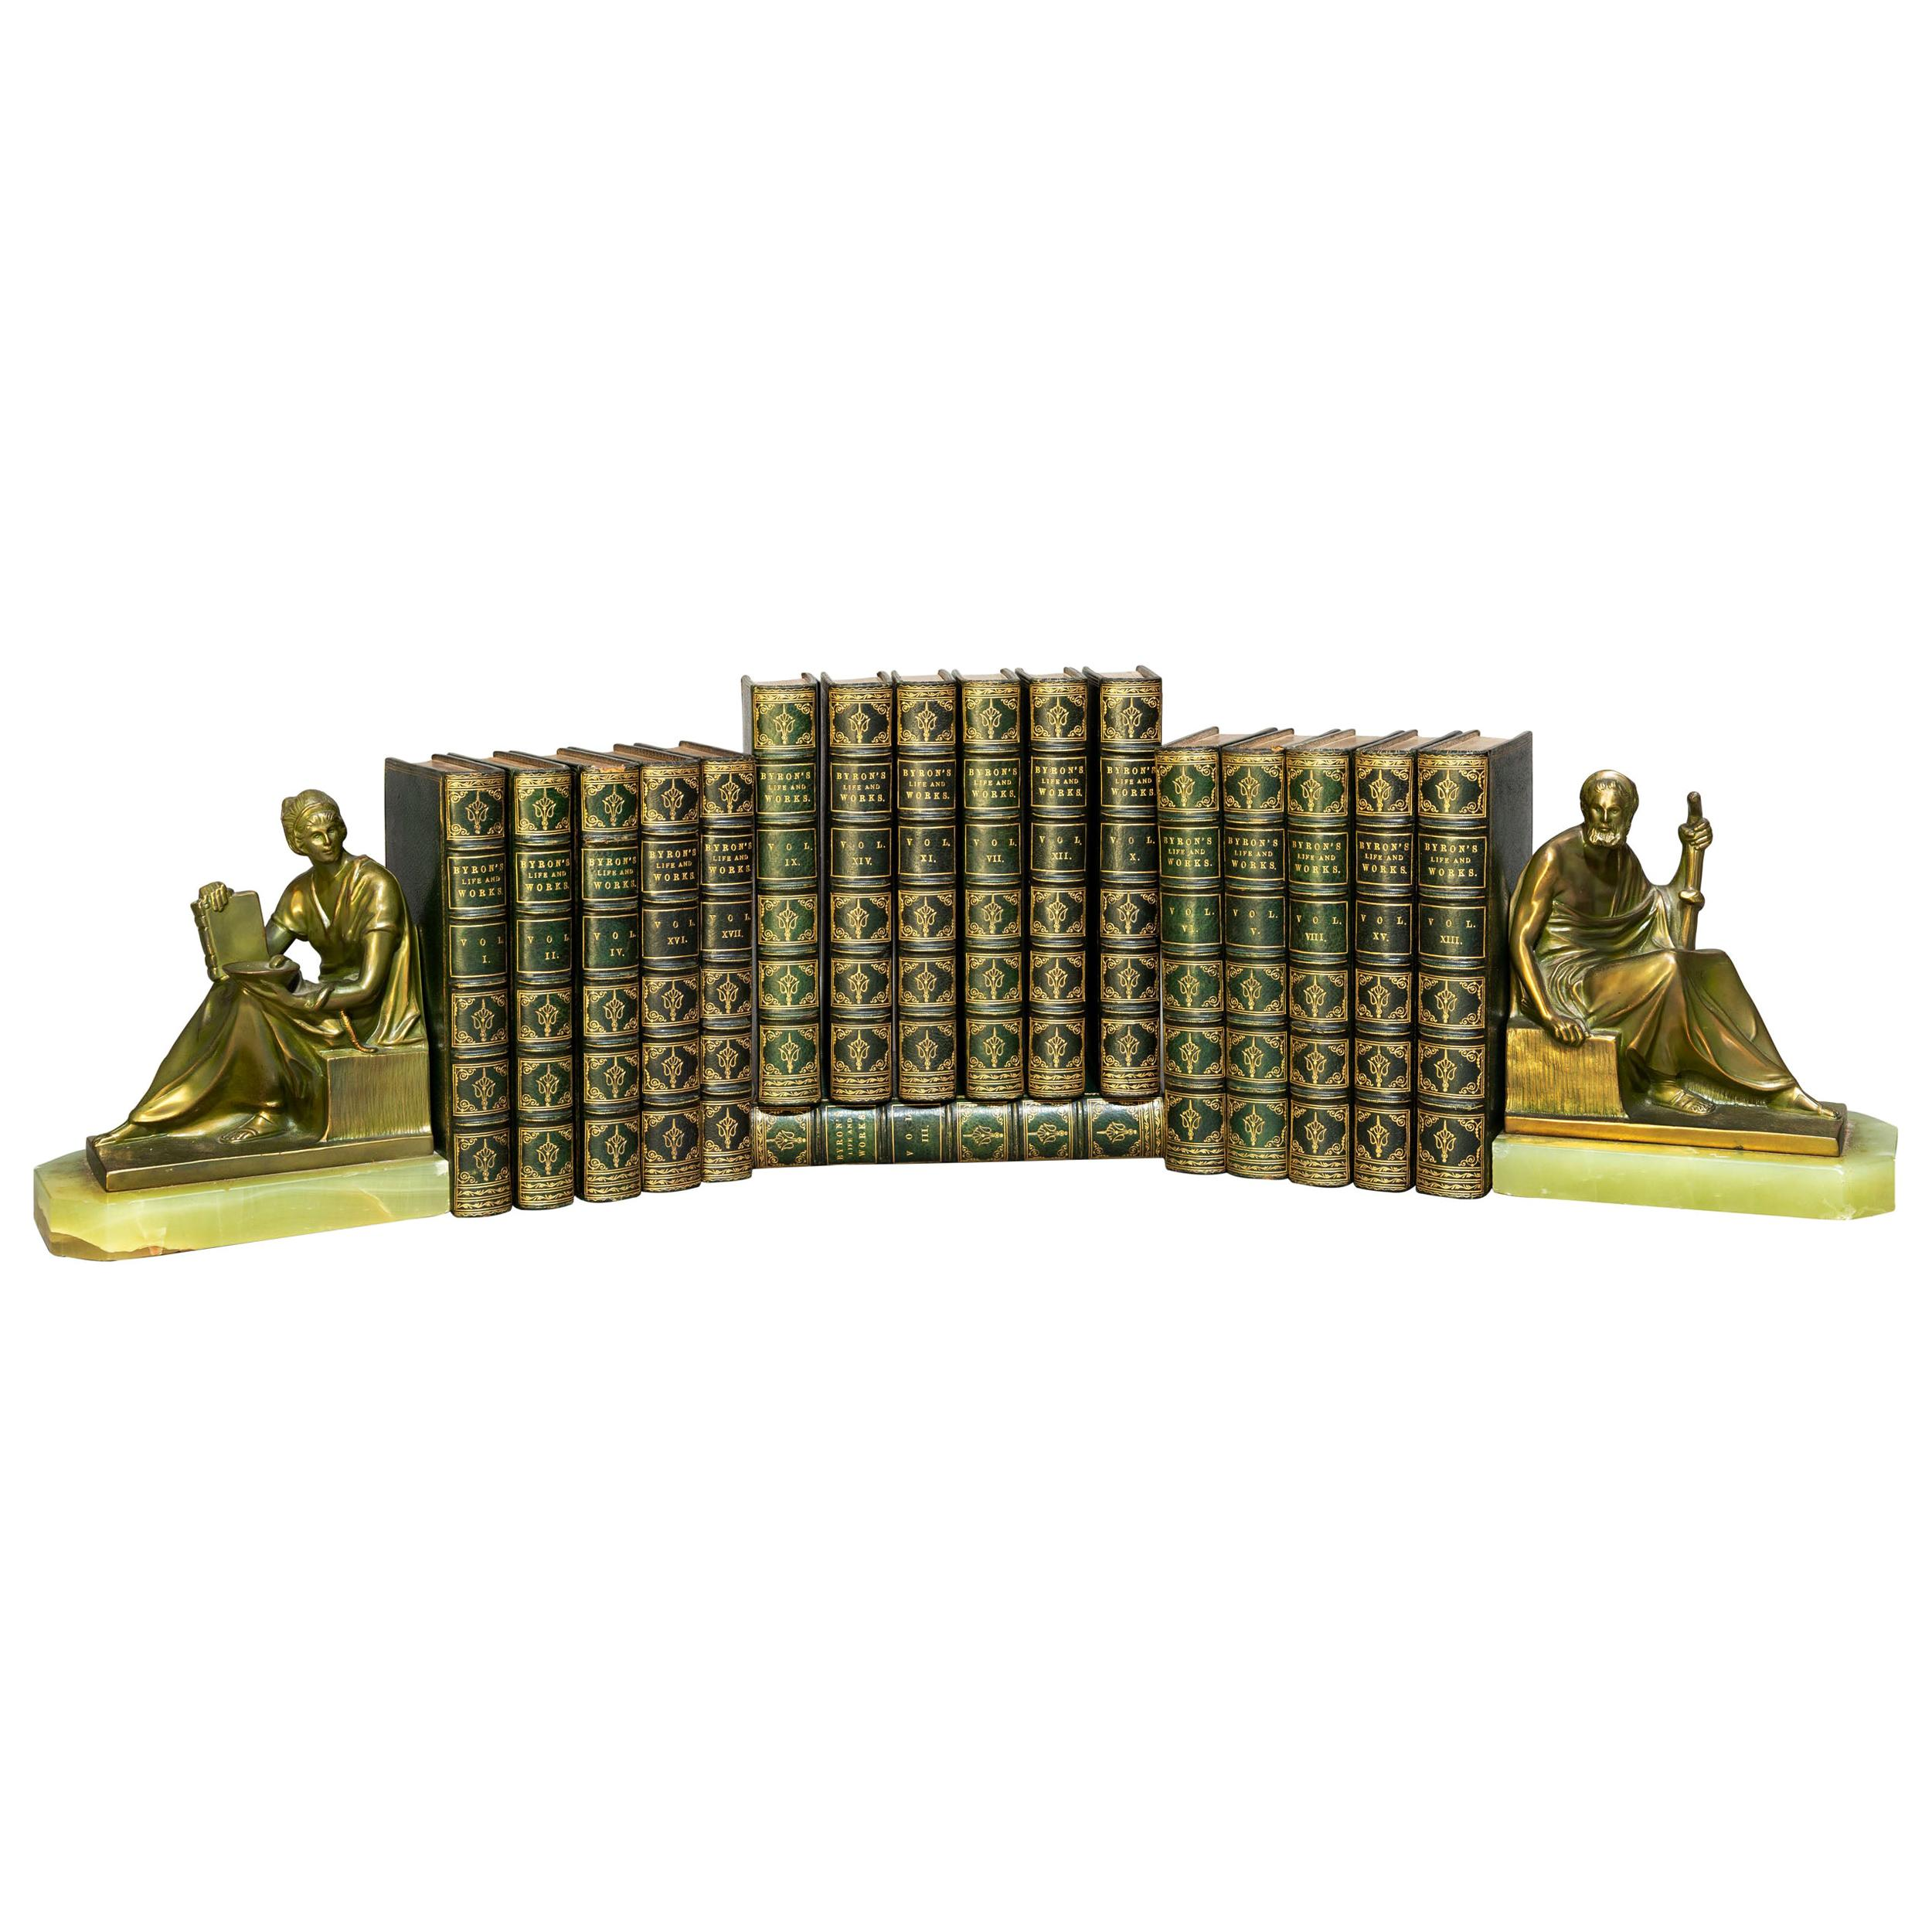 'Book sets' 17 Volumes, Lord Byron, The Works